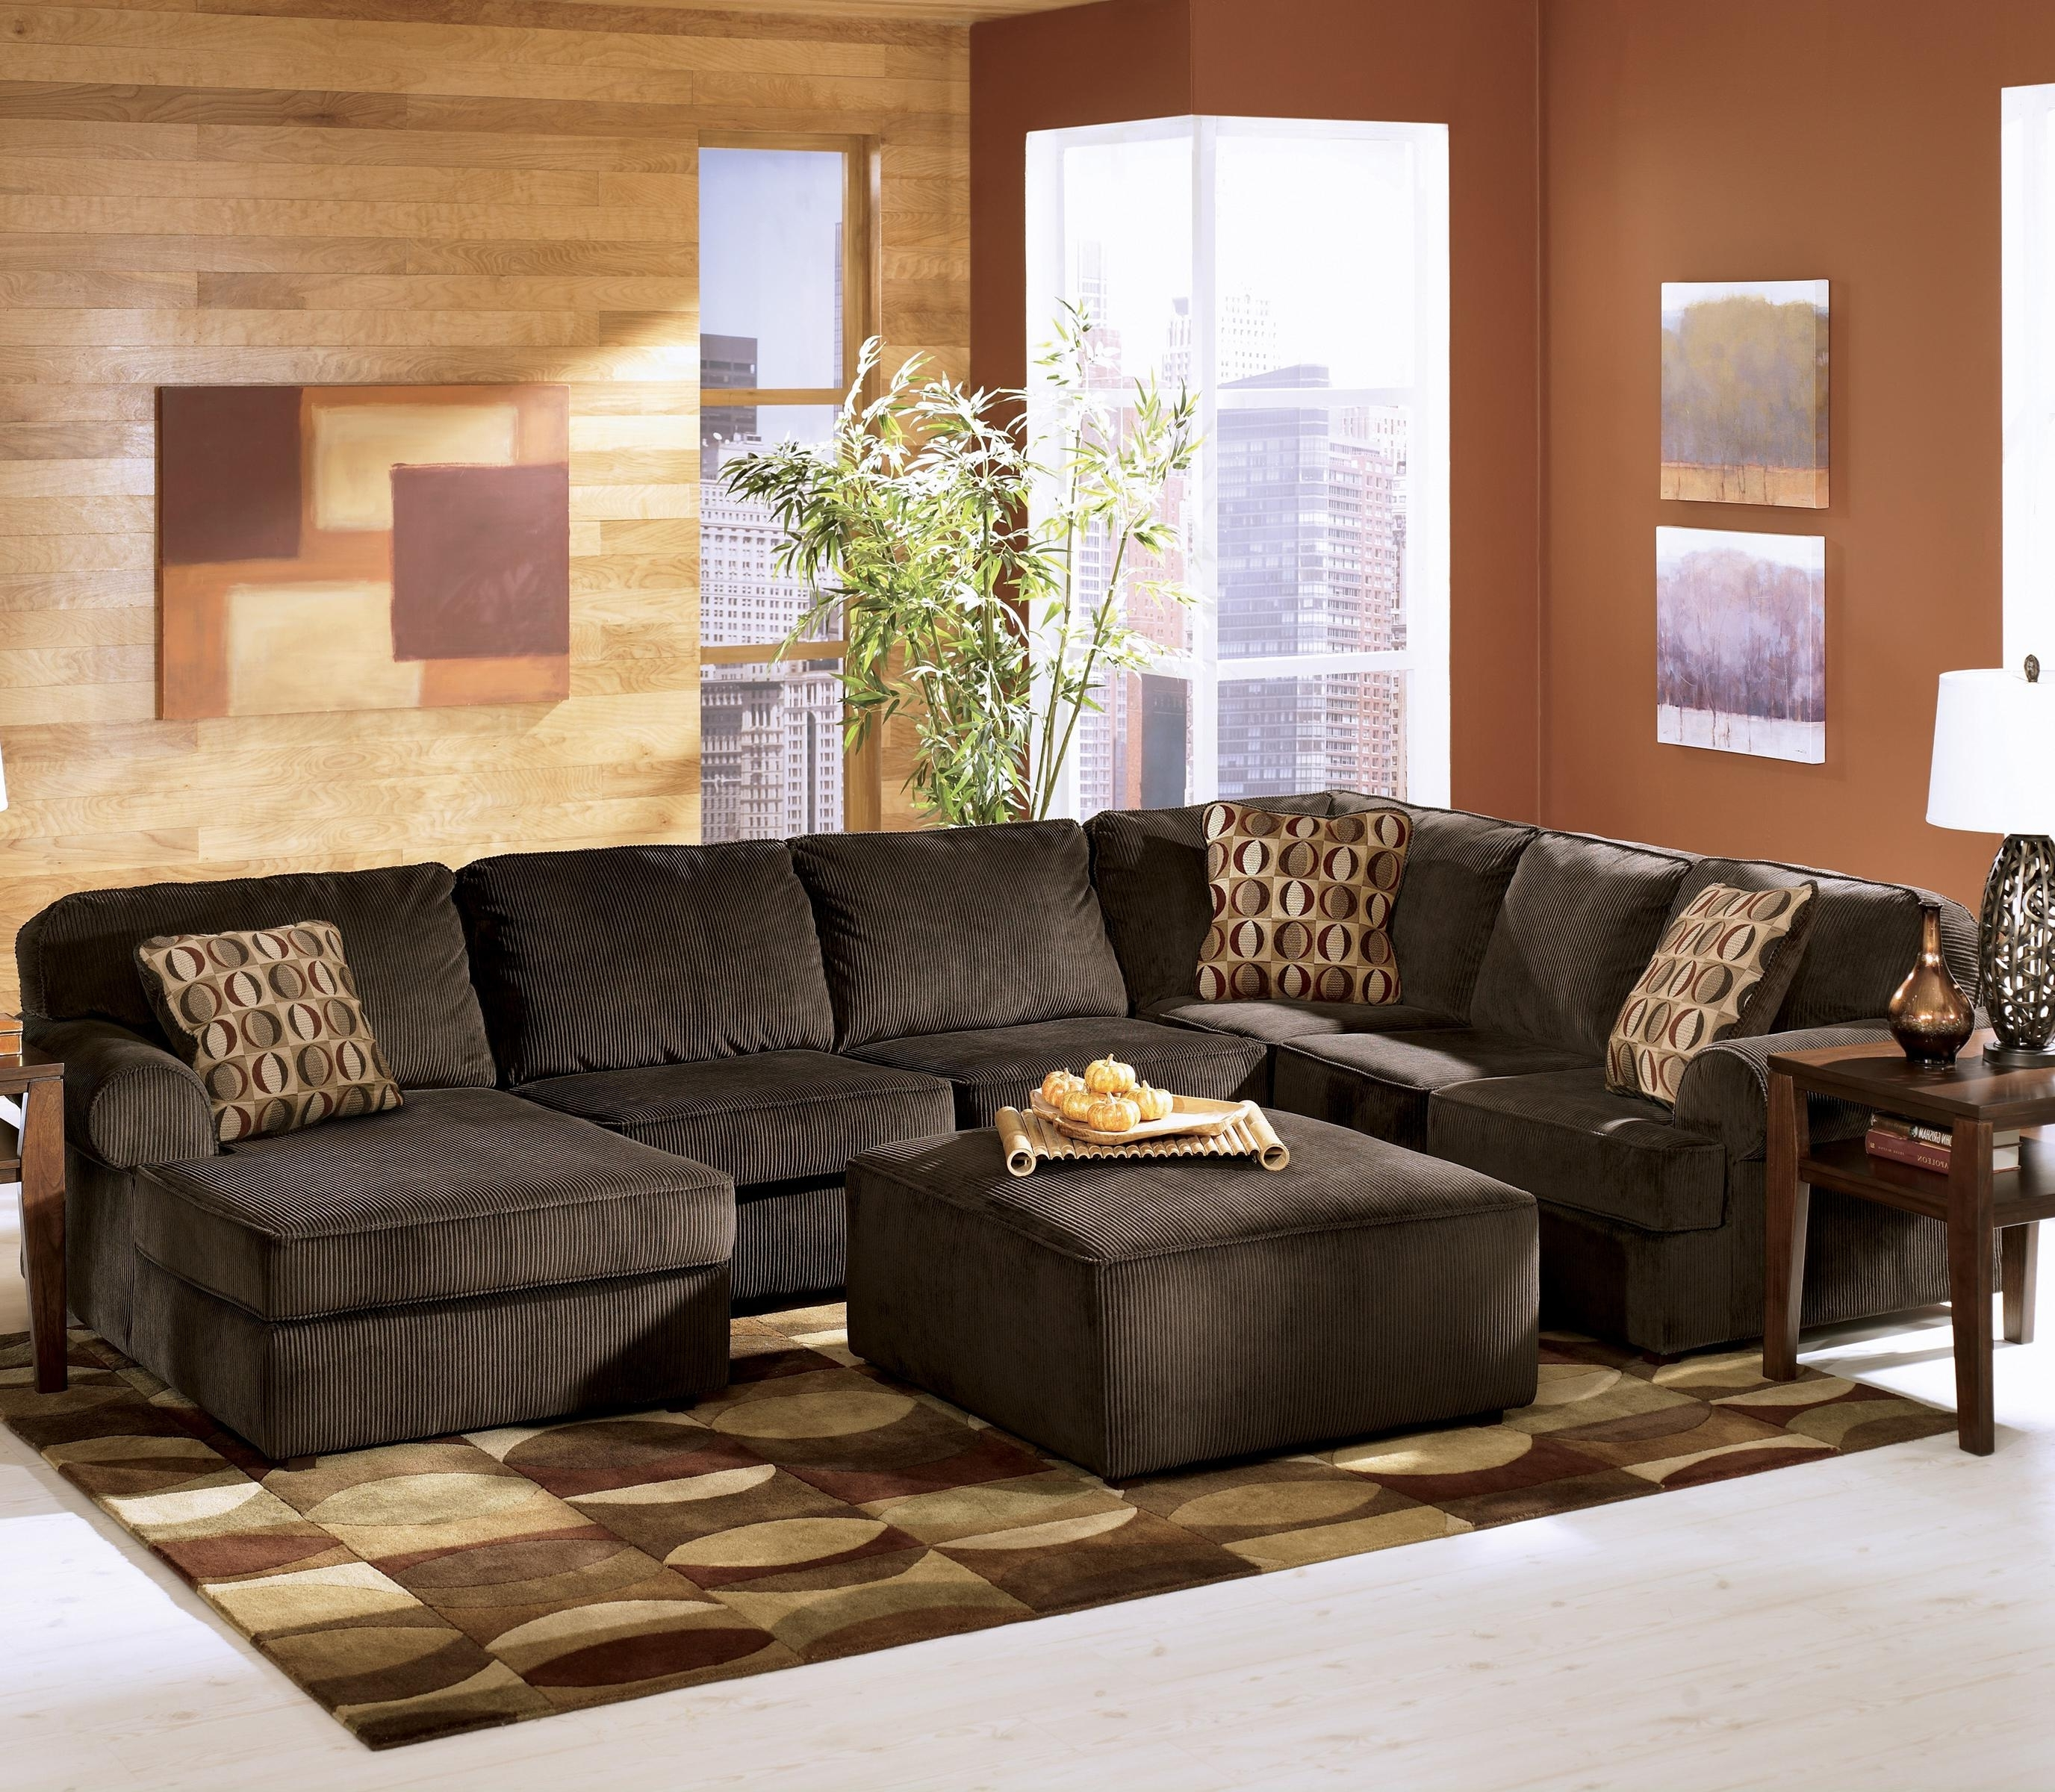 Most Recent Ashley Furniture Vista – Chocolate Casual 3 Piece Sectional With Pertaining To Ashley Furniture Sofa Chaises (View 14 of 15)